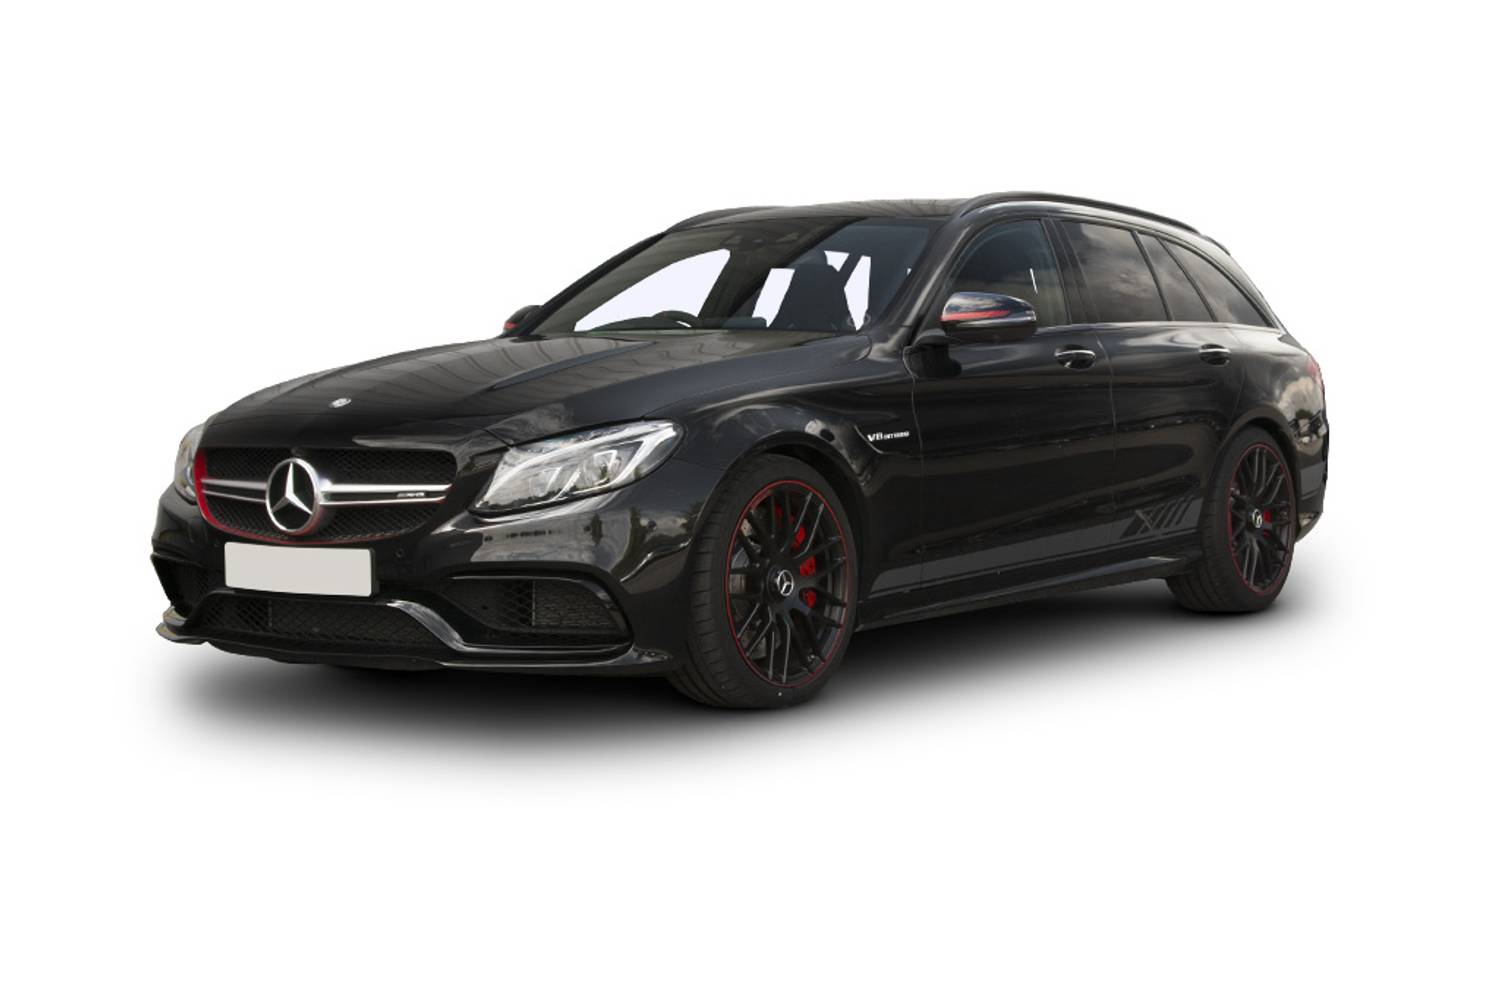 New Mercedes Benz C Class Amg Estate C43 4matic 5 Door